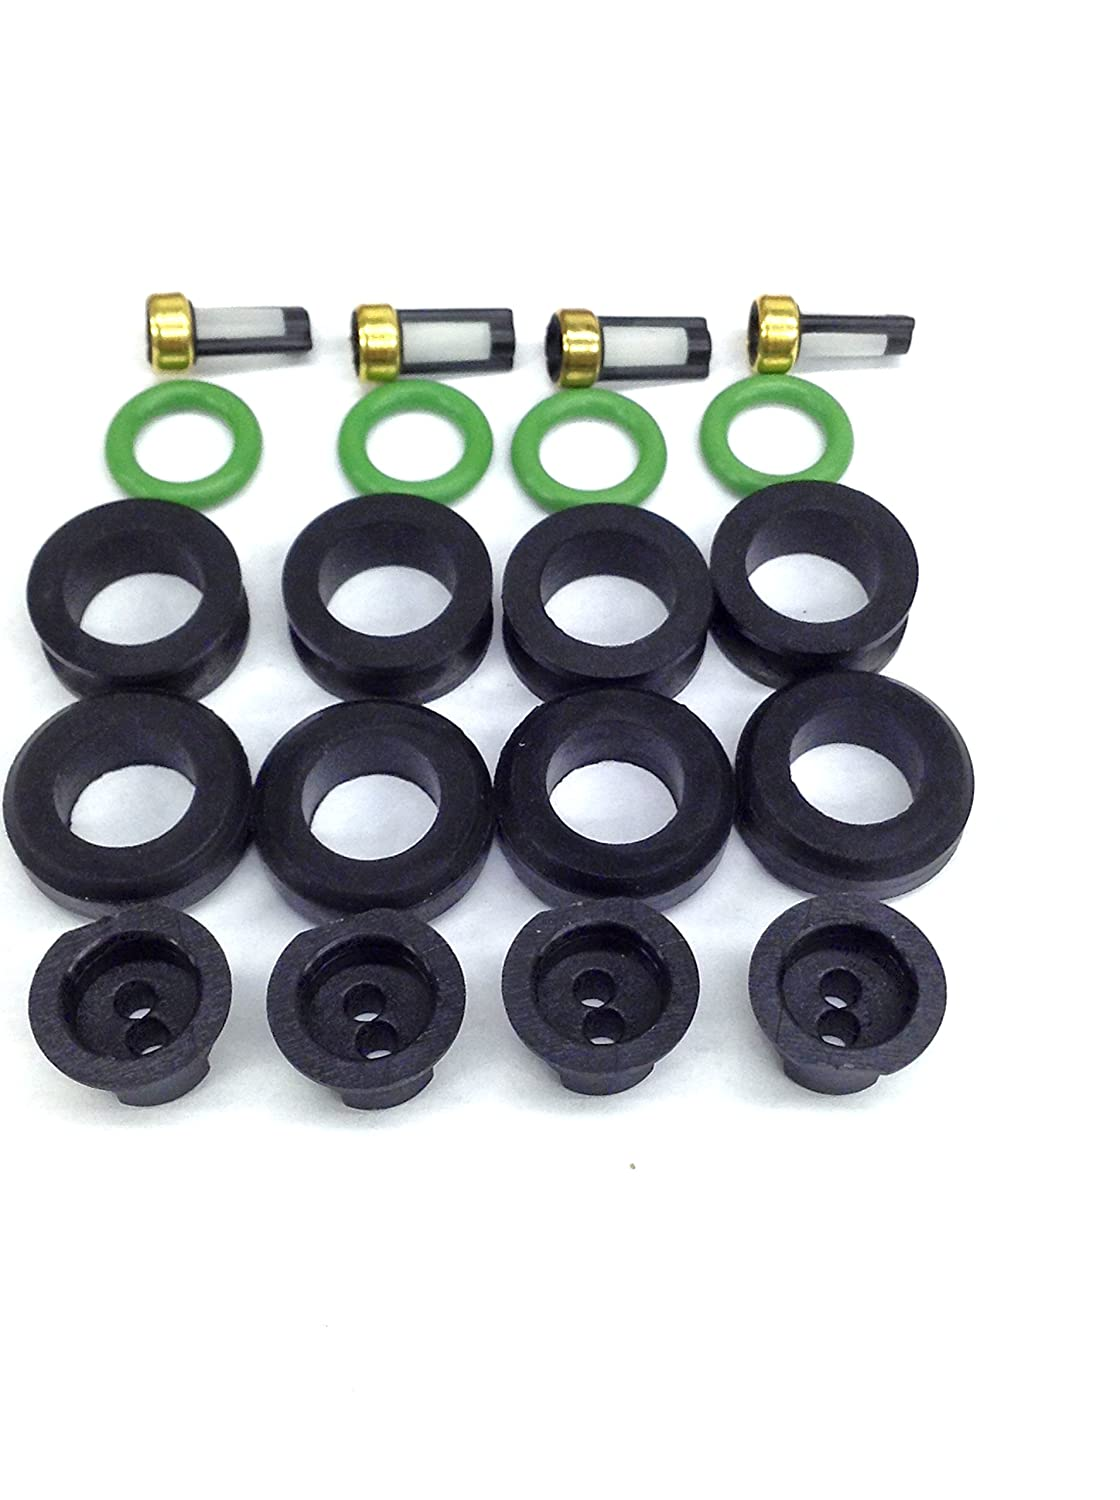 UREMCO 24-4 Fuel Injector Seal Kit, 1 Pack